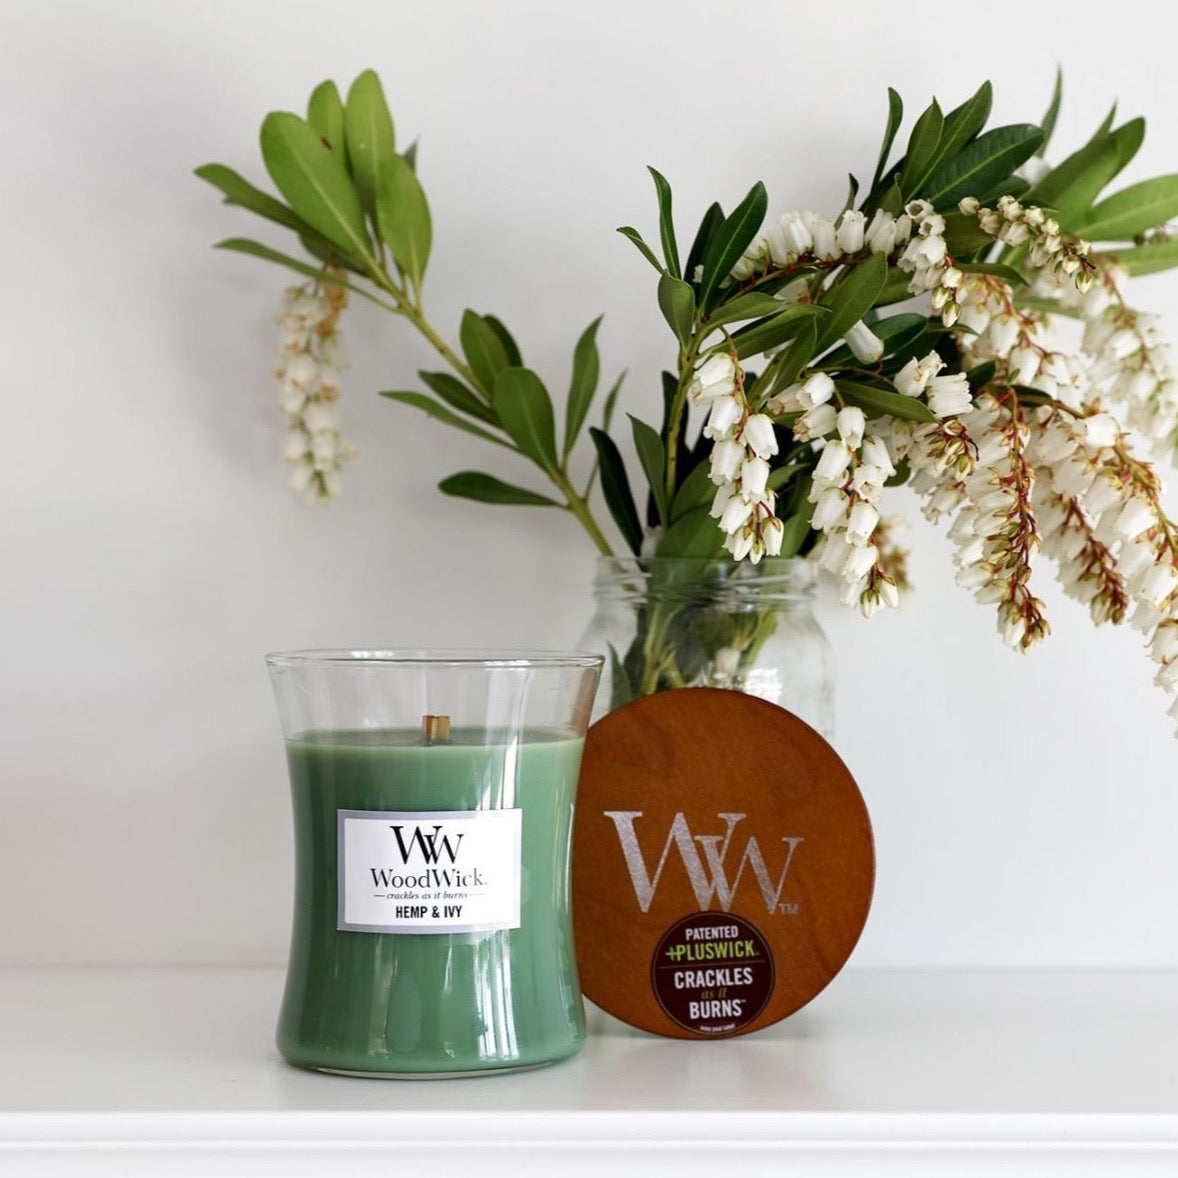 Hemp & Ivy Candle